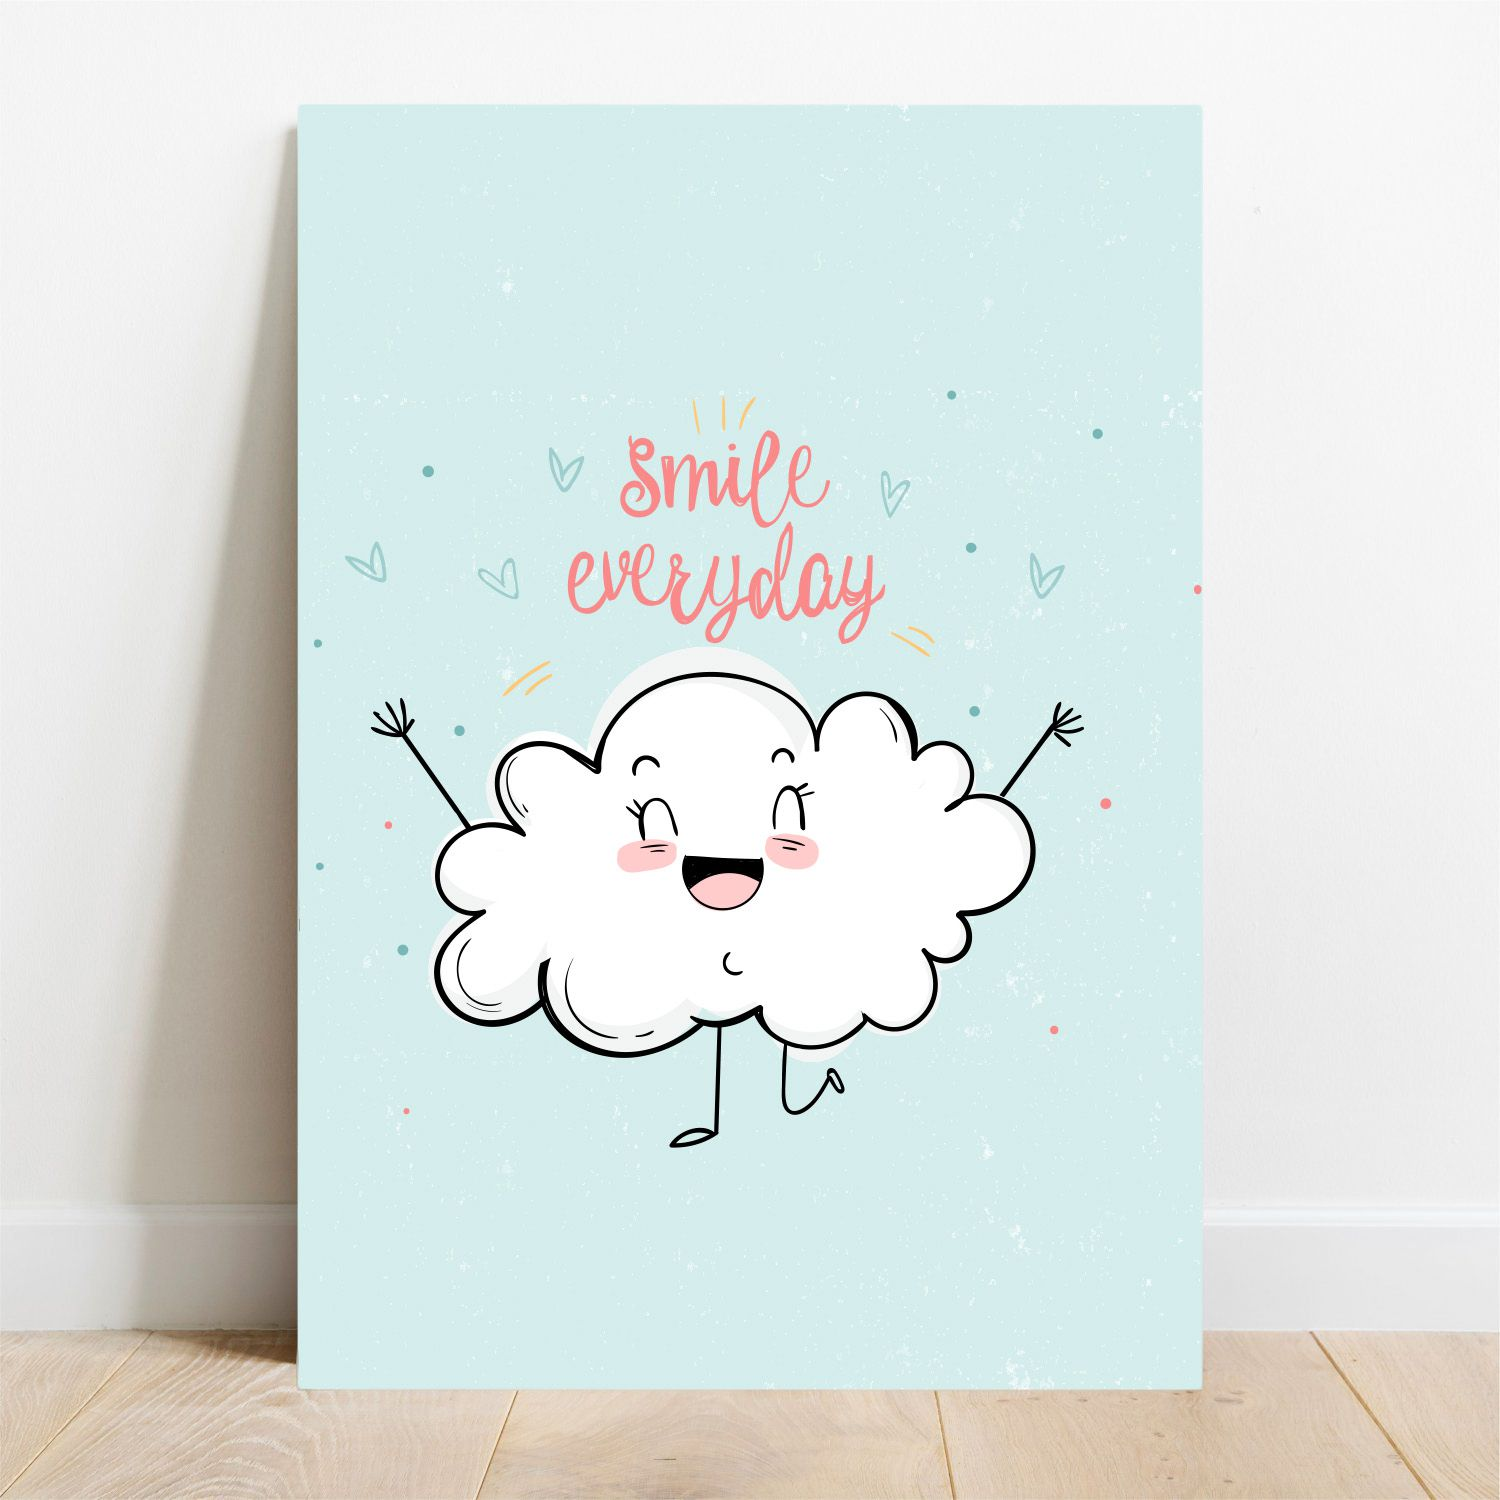 Placa Decorativa Smile Everyday  - TaColado